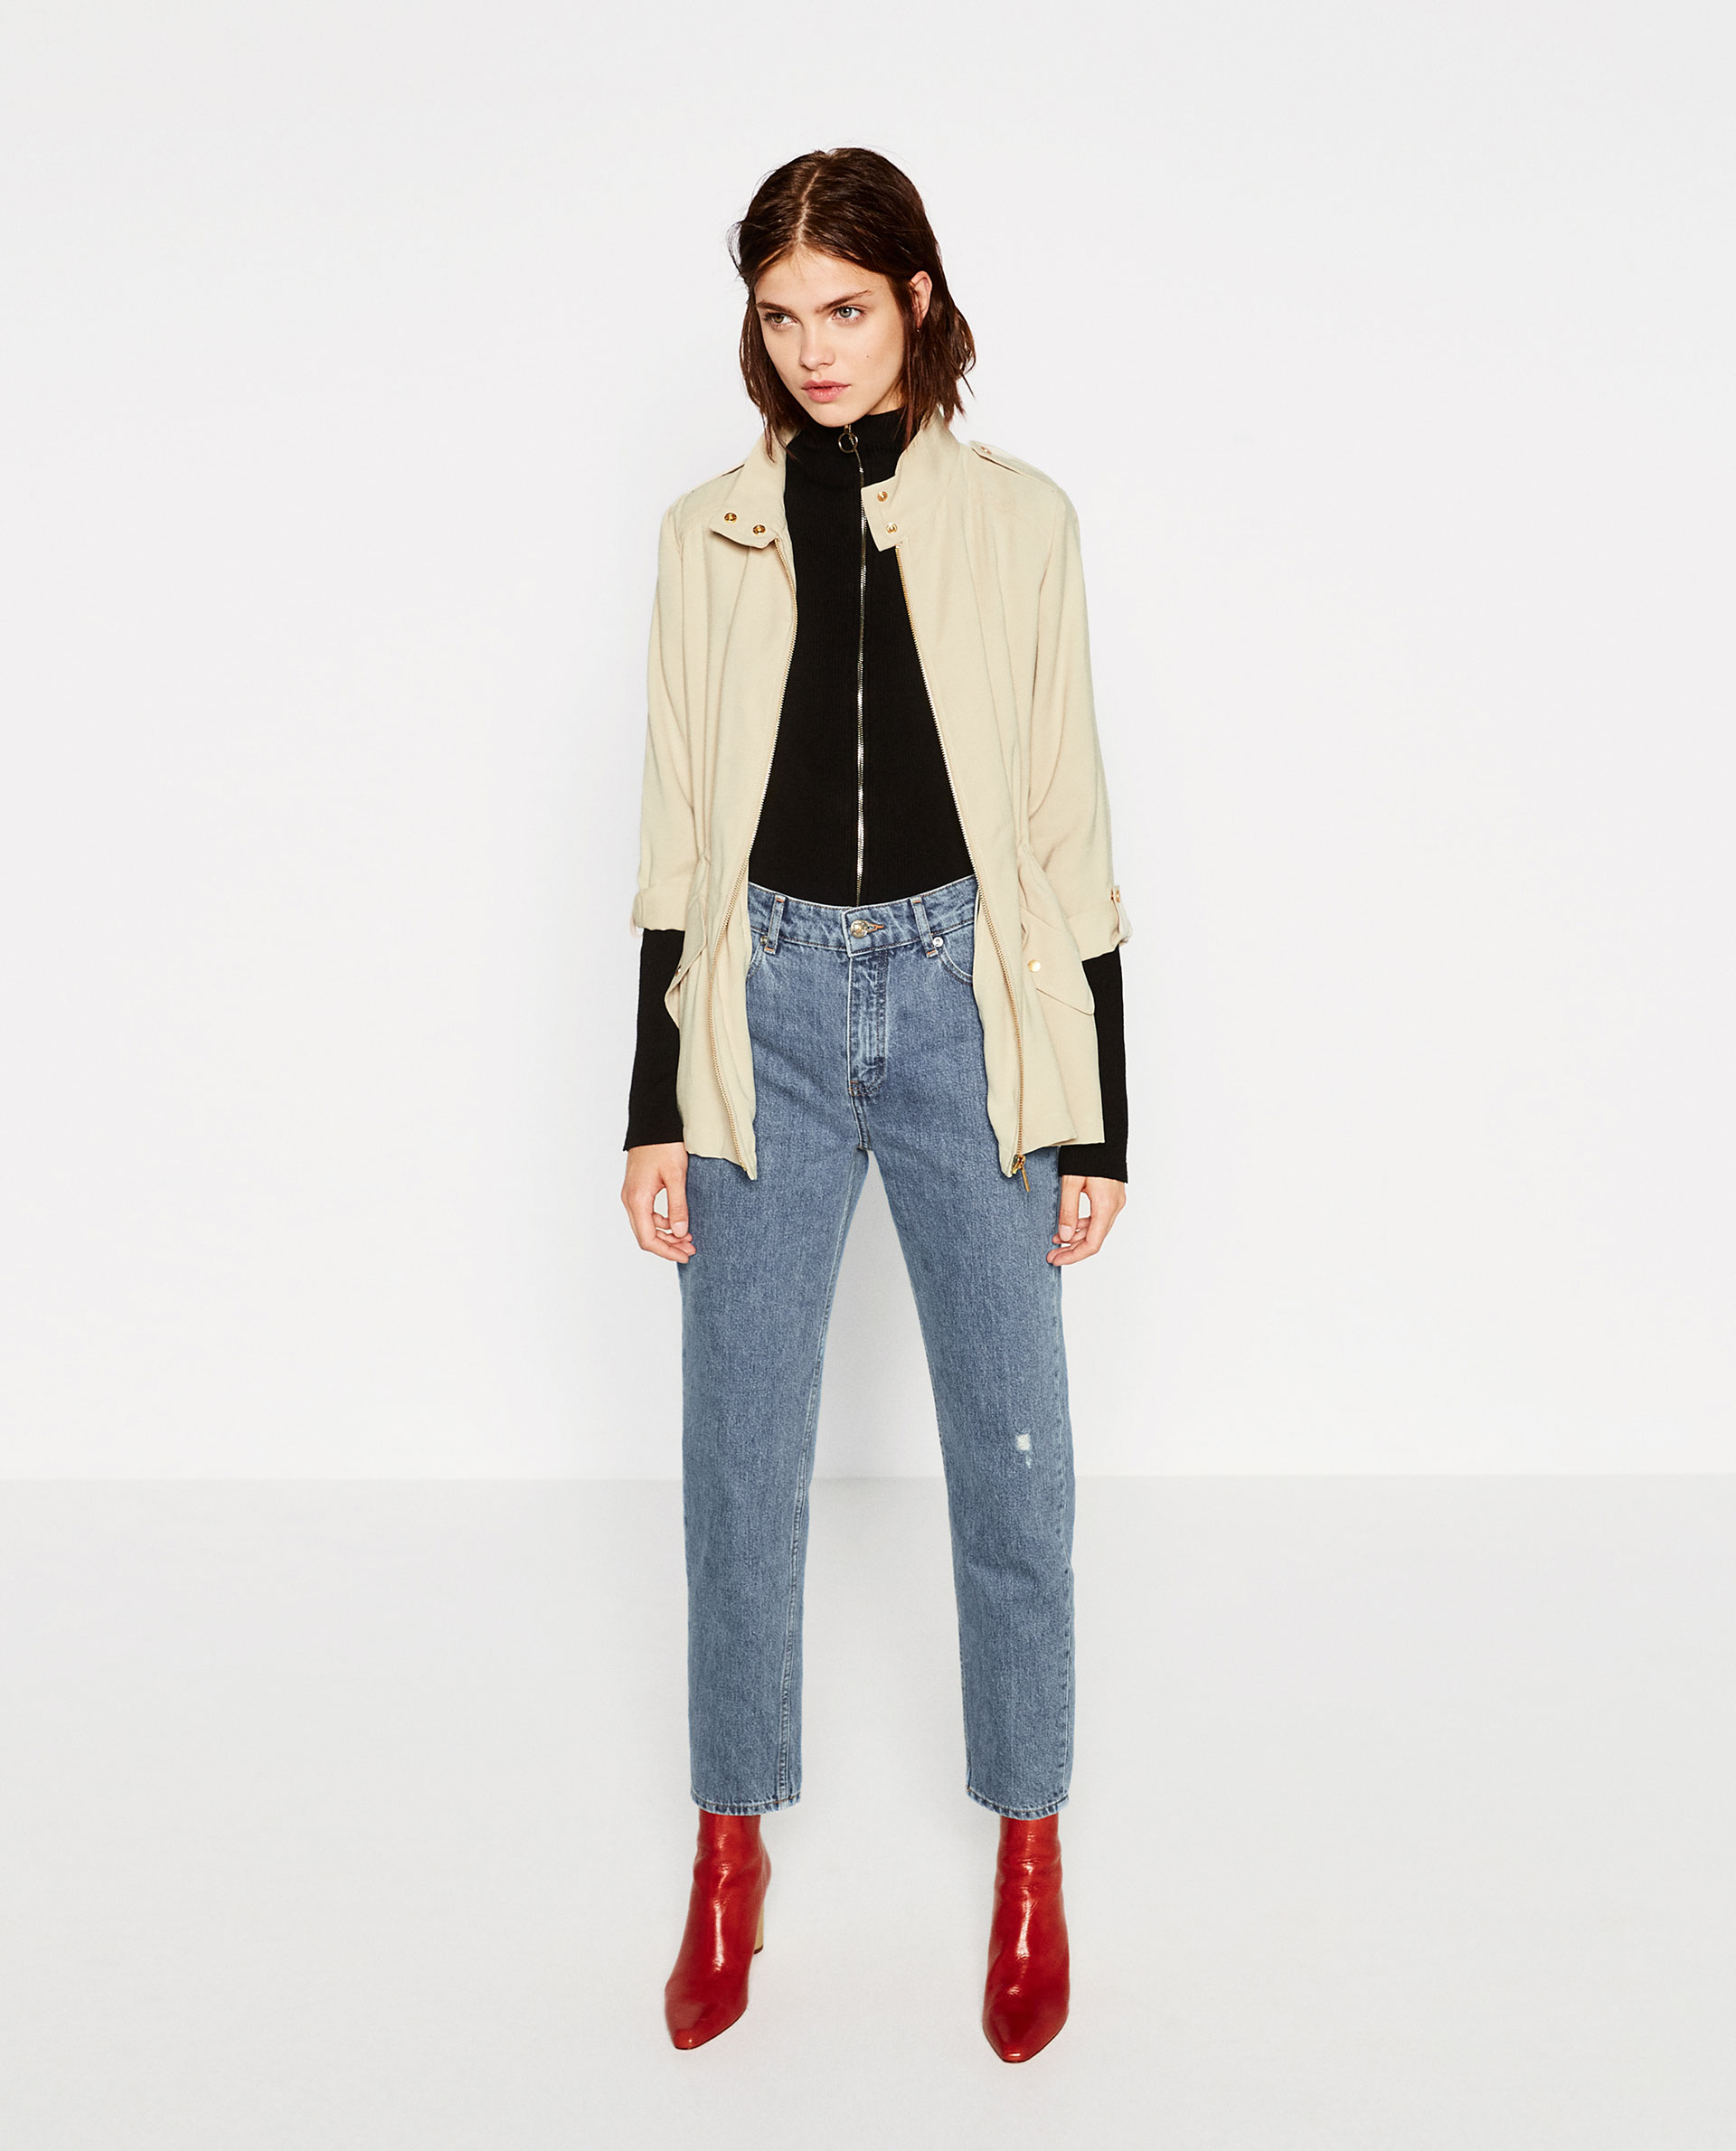 zara, outfit, jacket, jeans, outfit ideas,